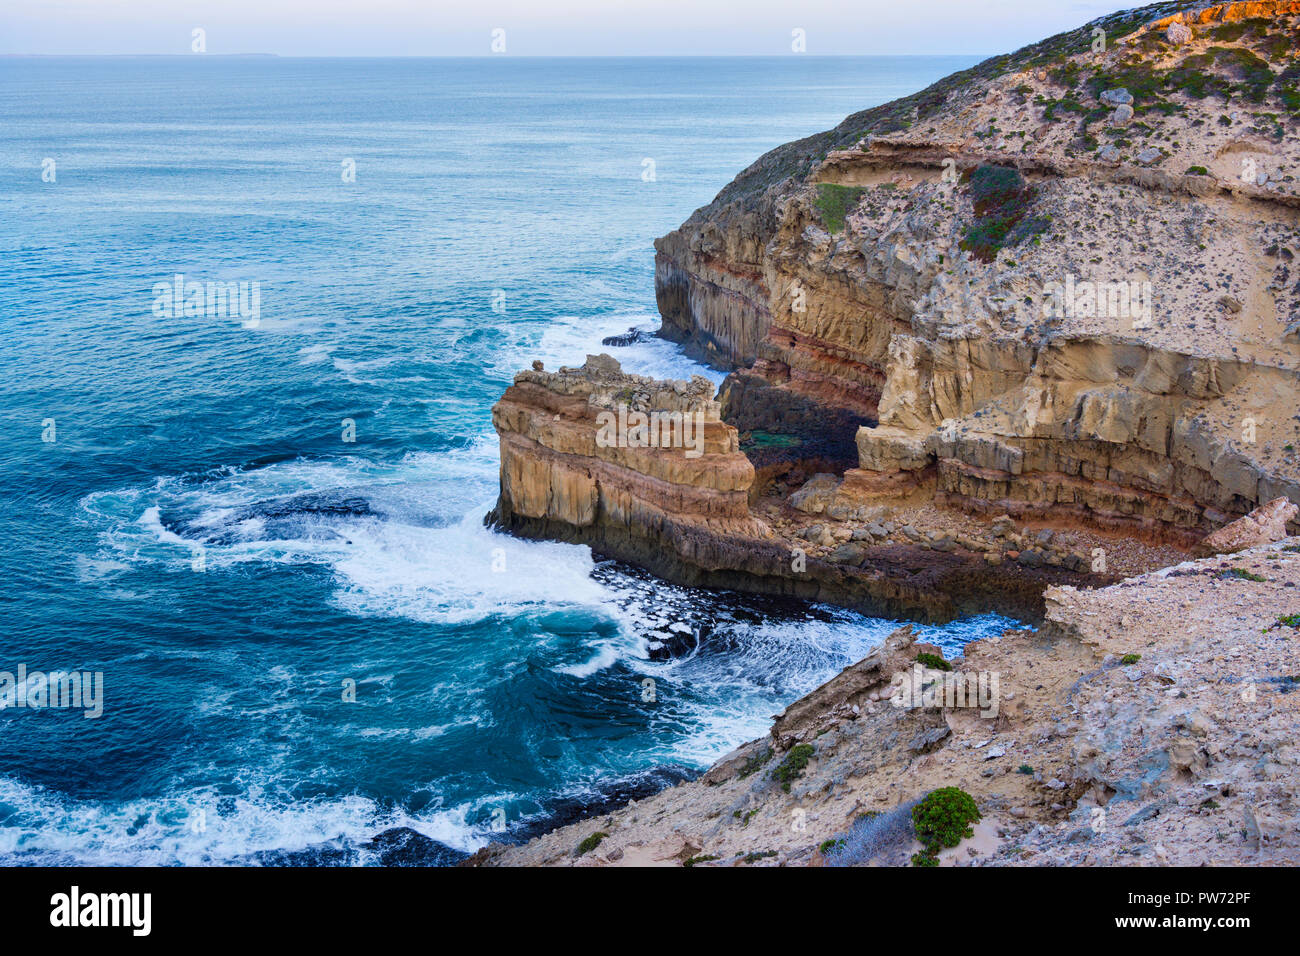 Views of the rugged coastal cliffs along the Anxious Bay Cliff Top Loop drive.  Elliston South Australia - Stock Image